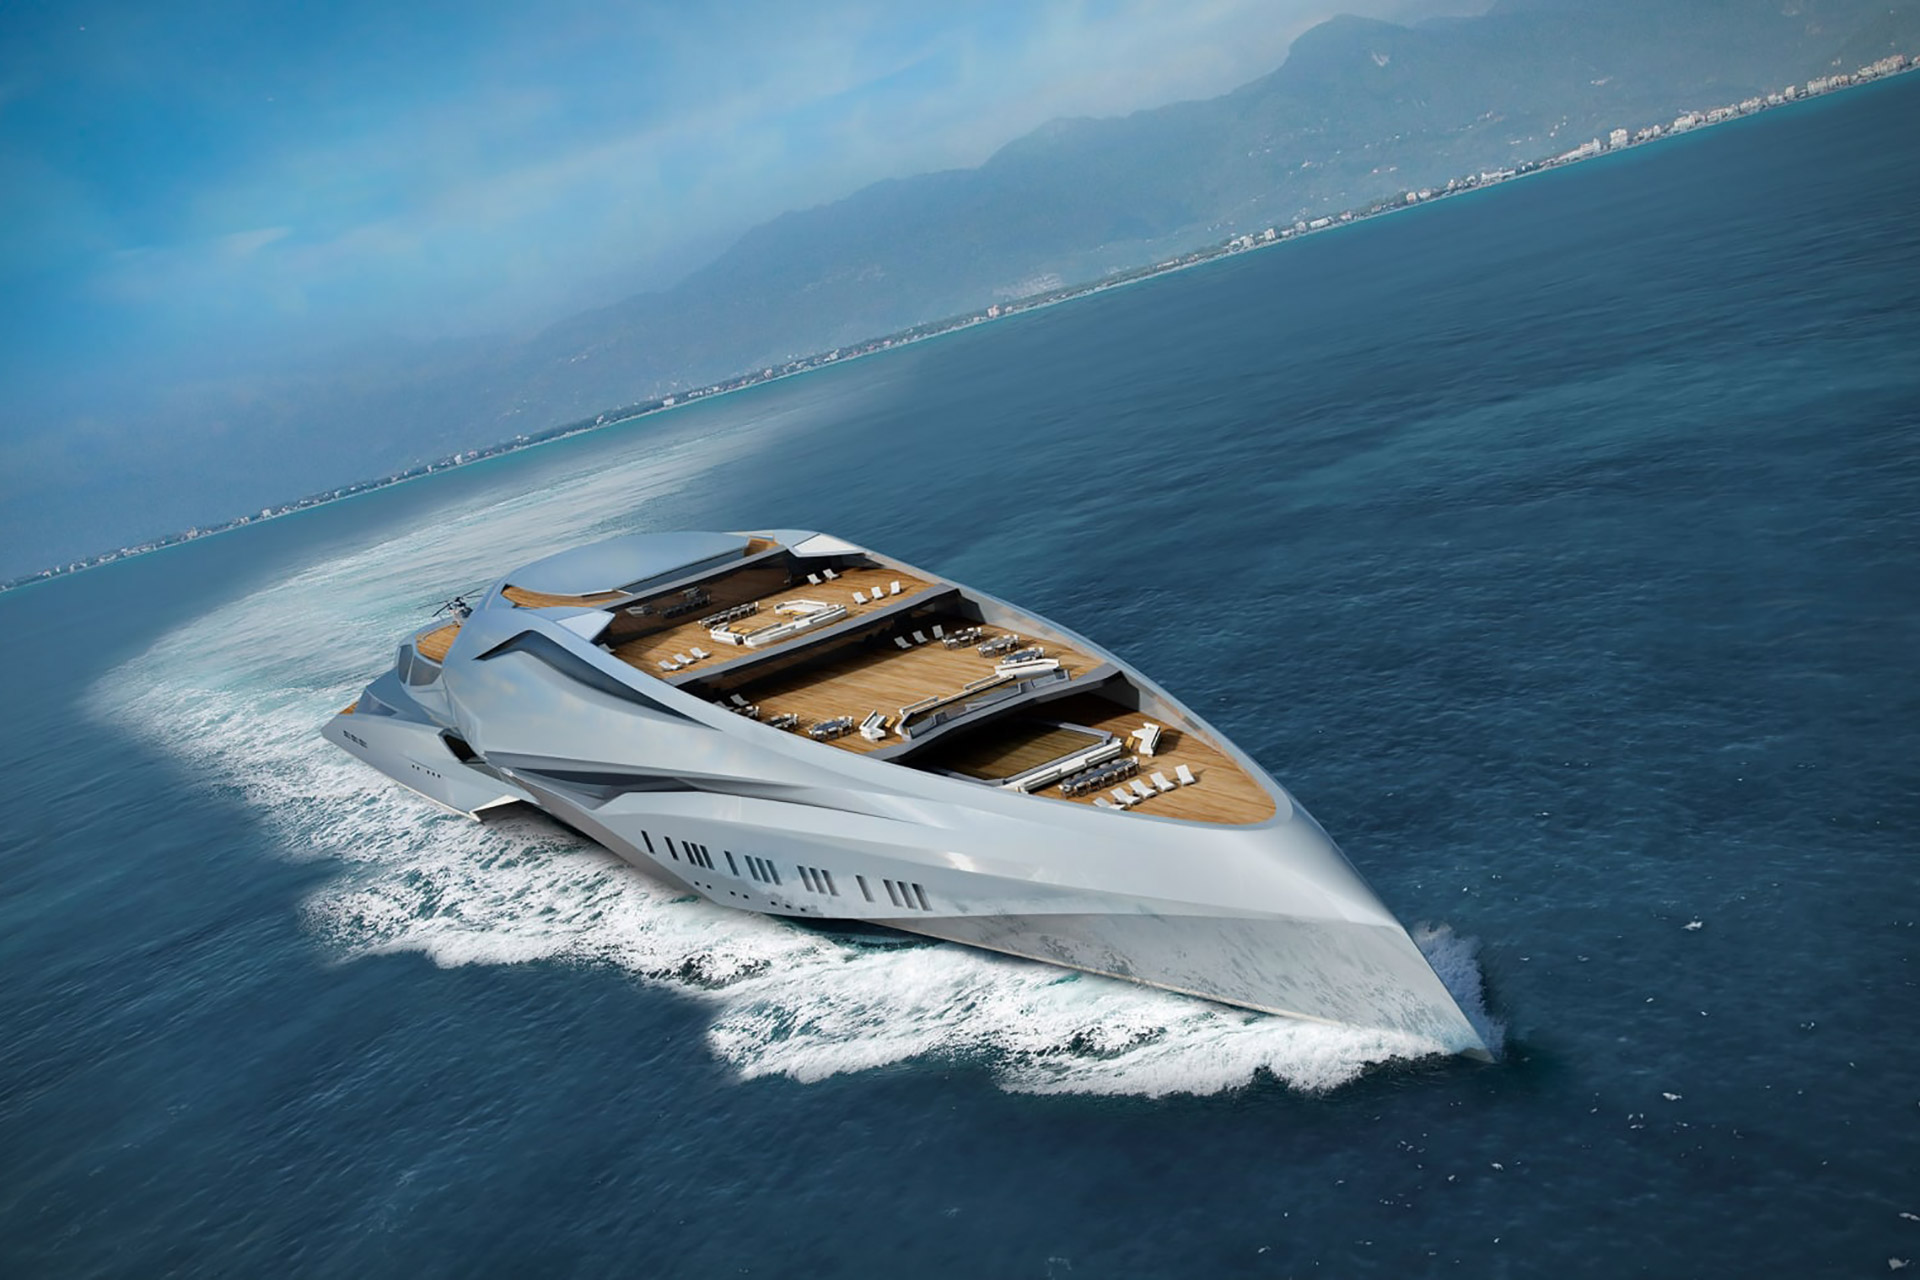 Project Valkyrie Superyacht Uncrate